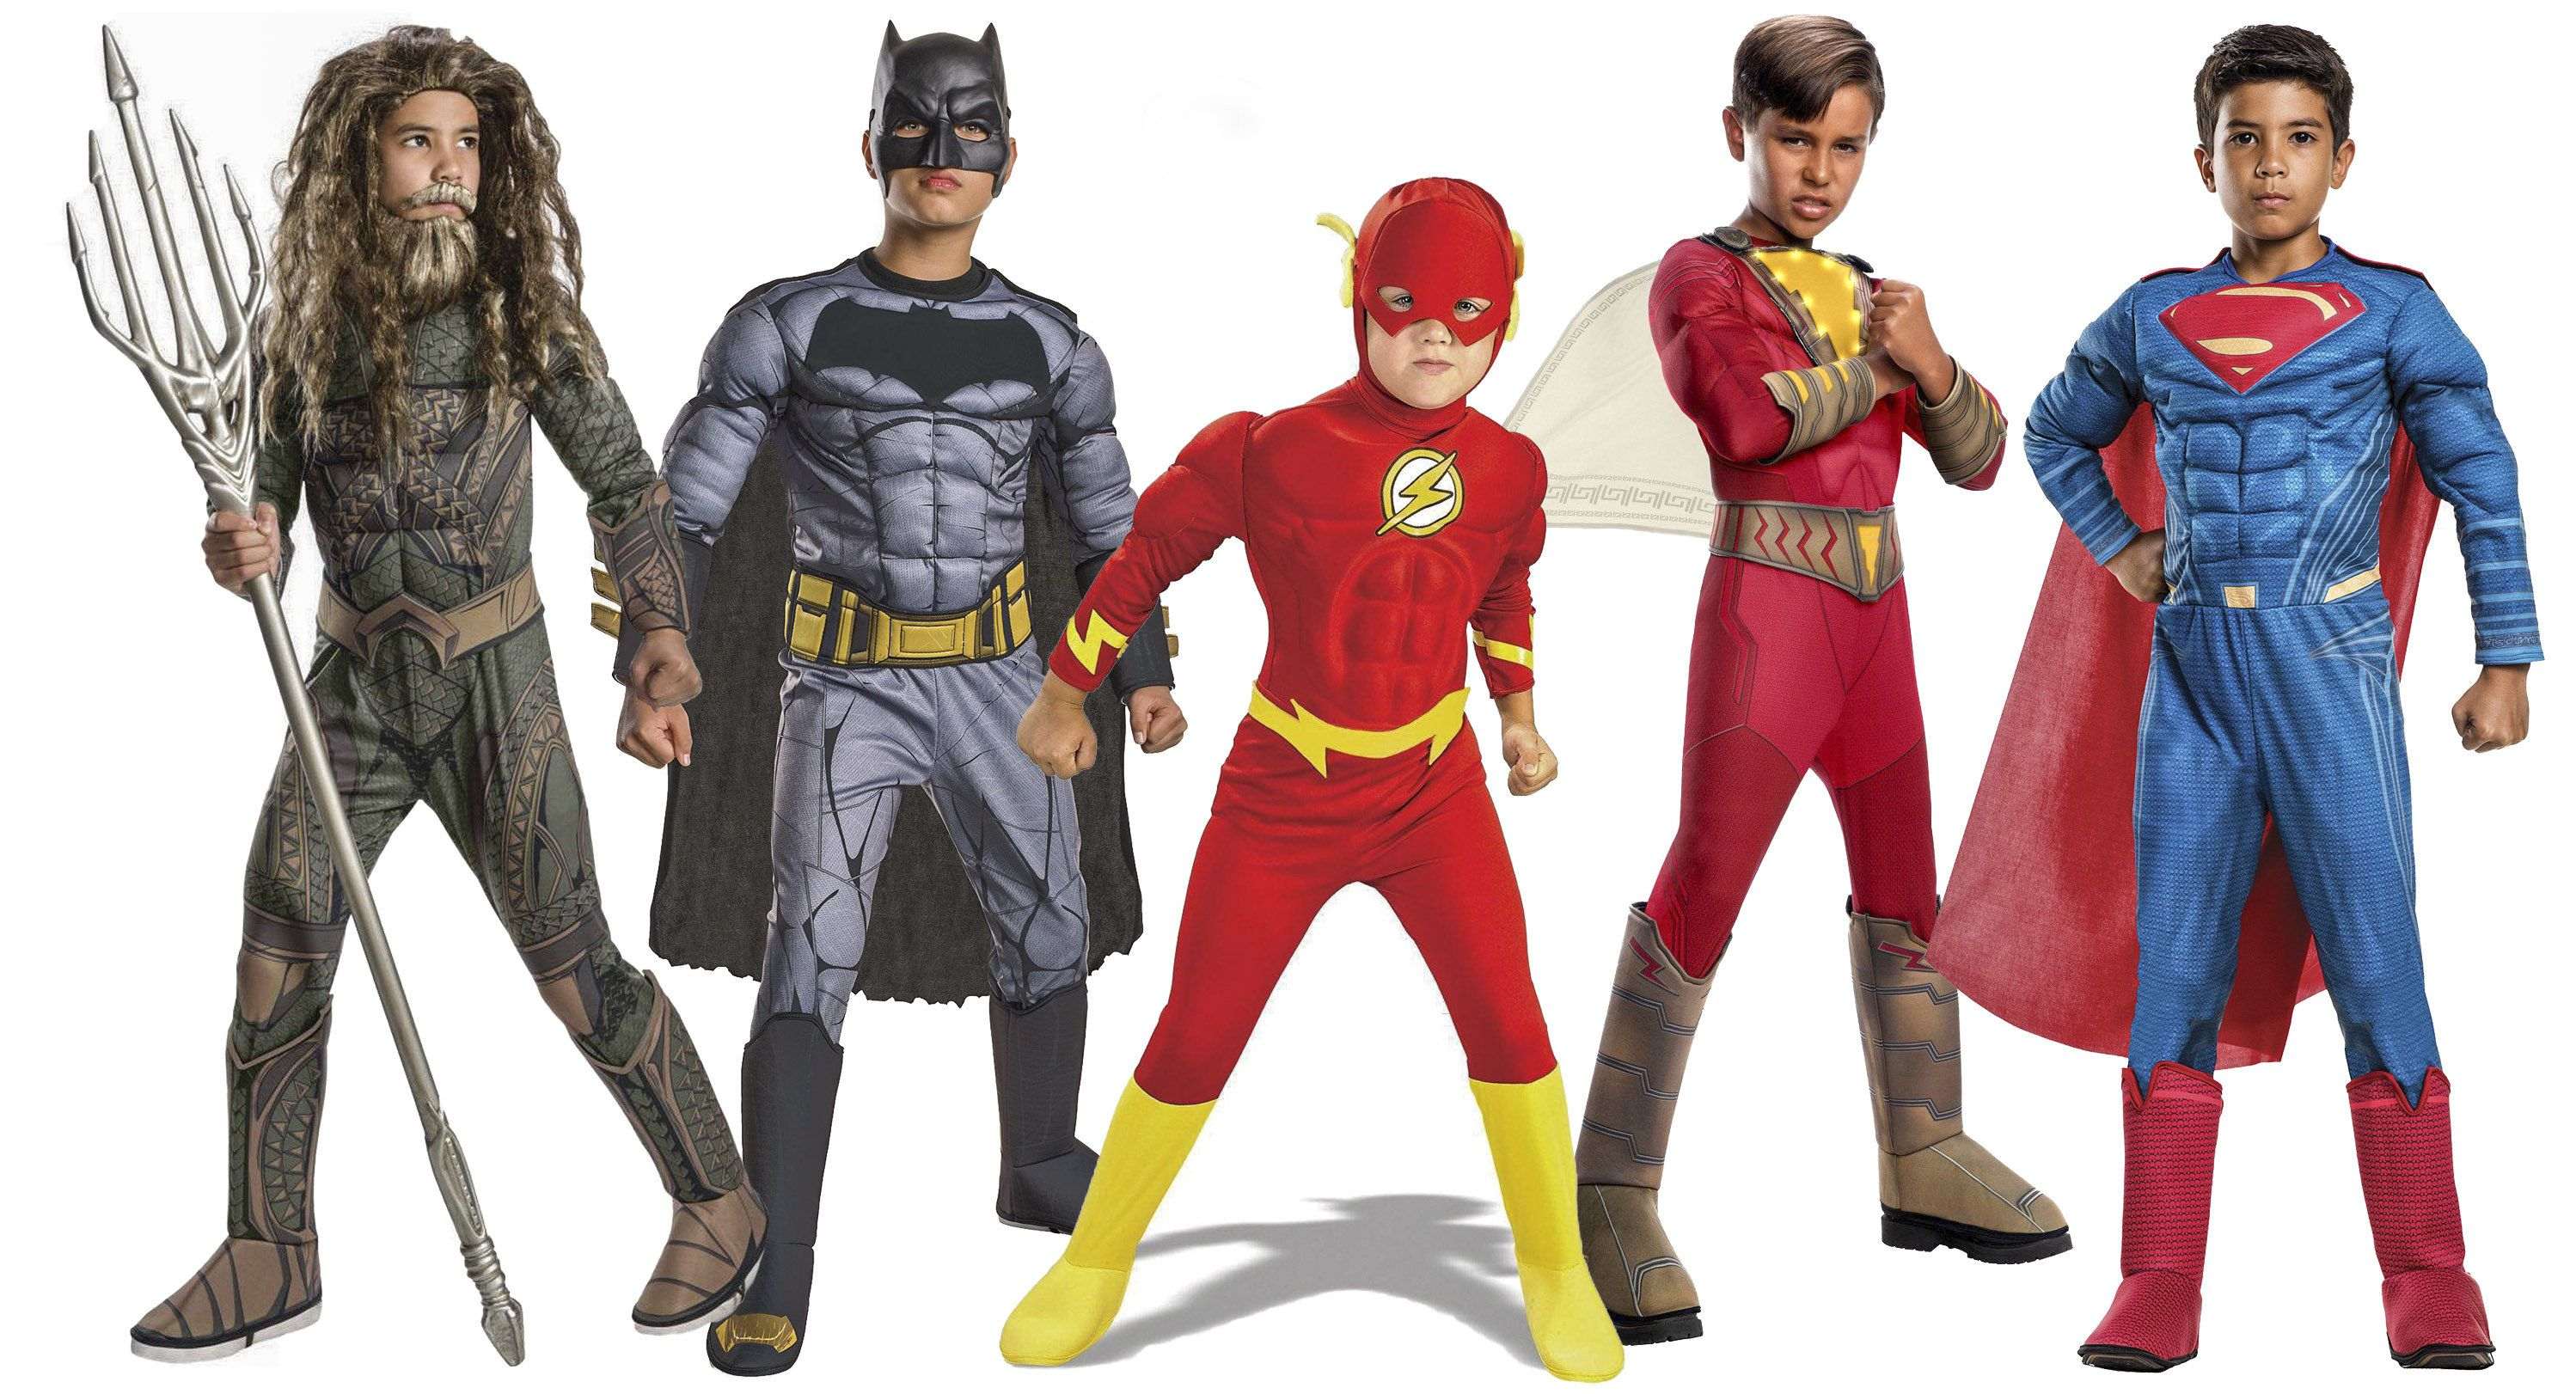 Boys Justice League Costumes